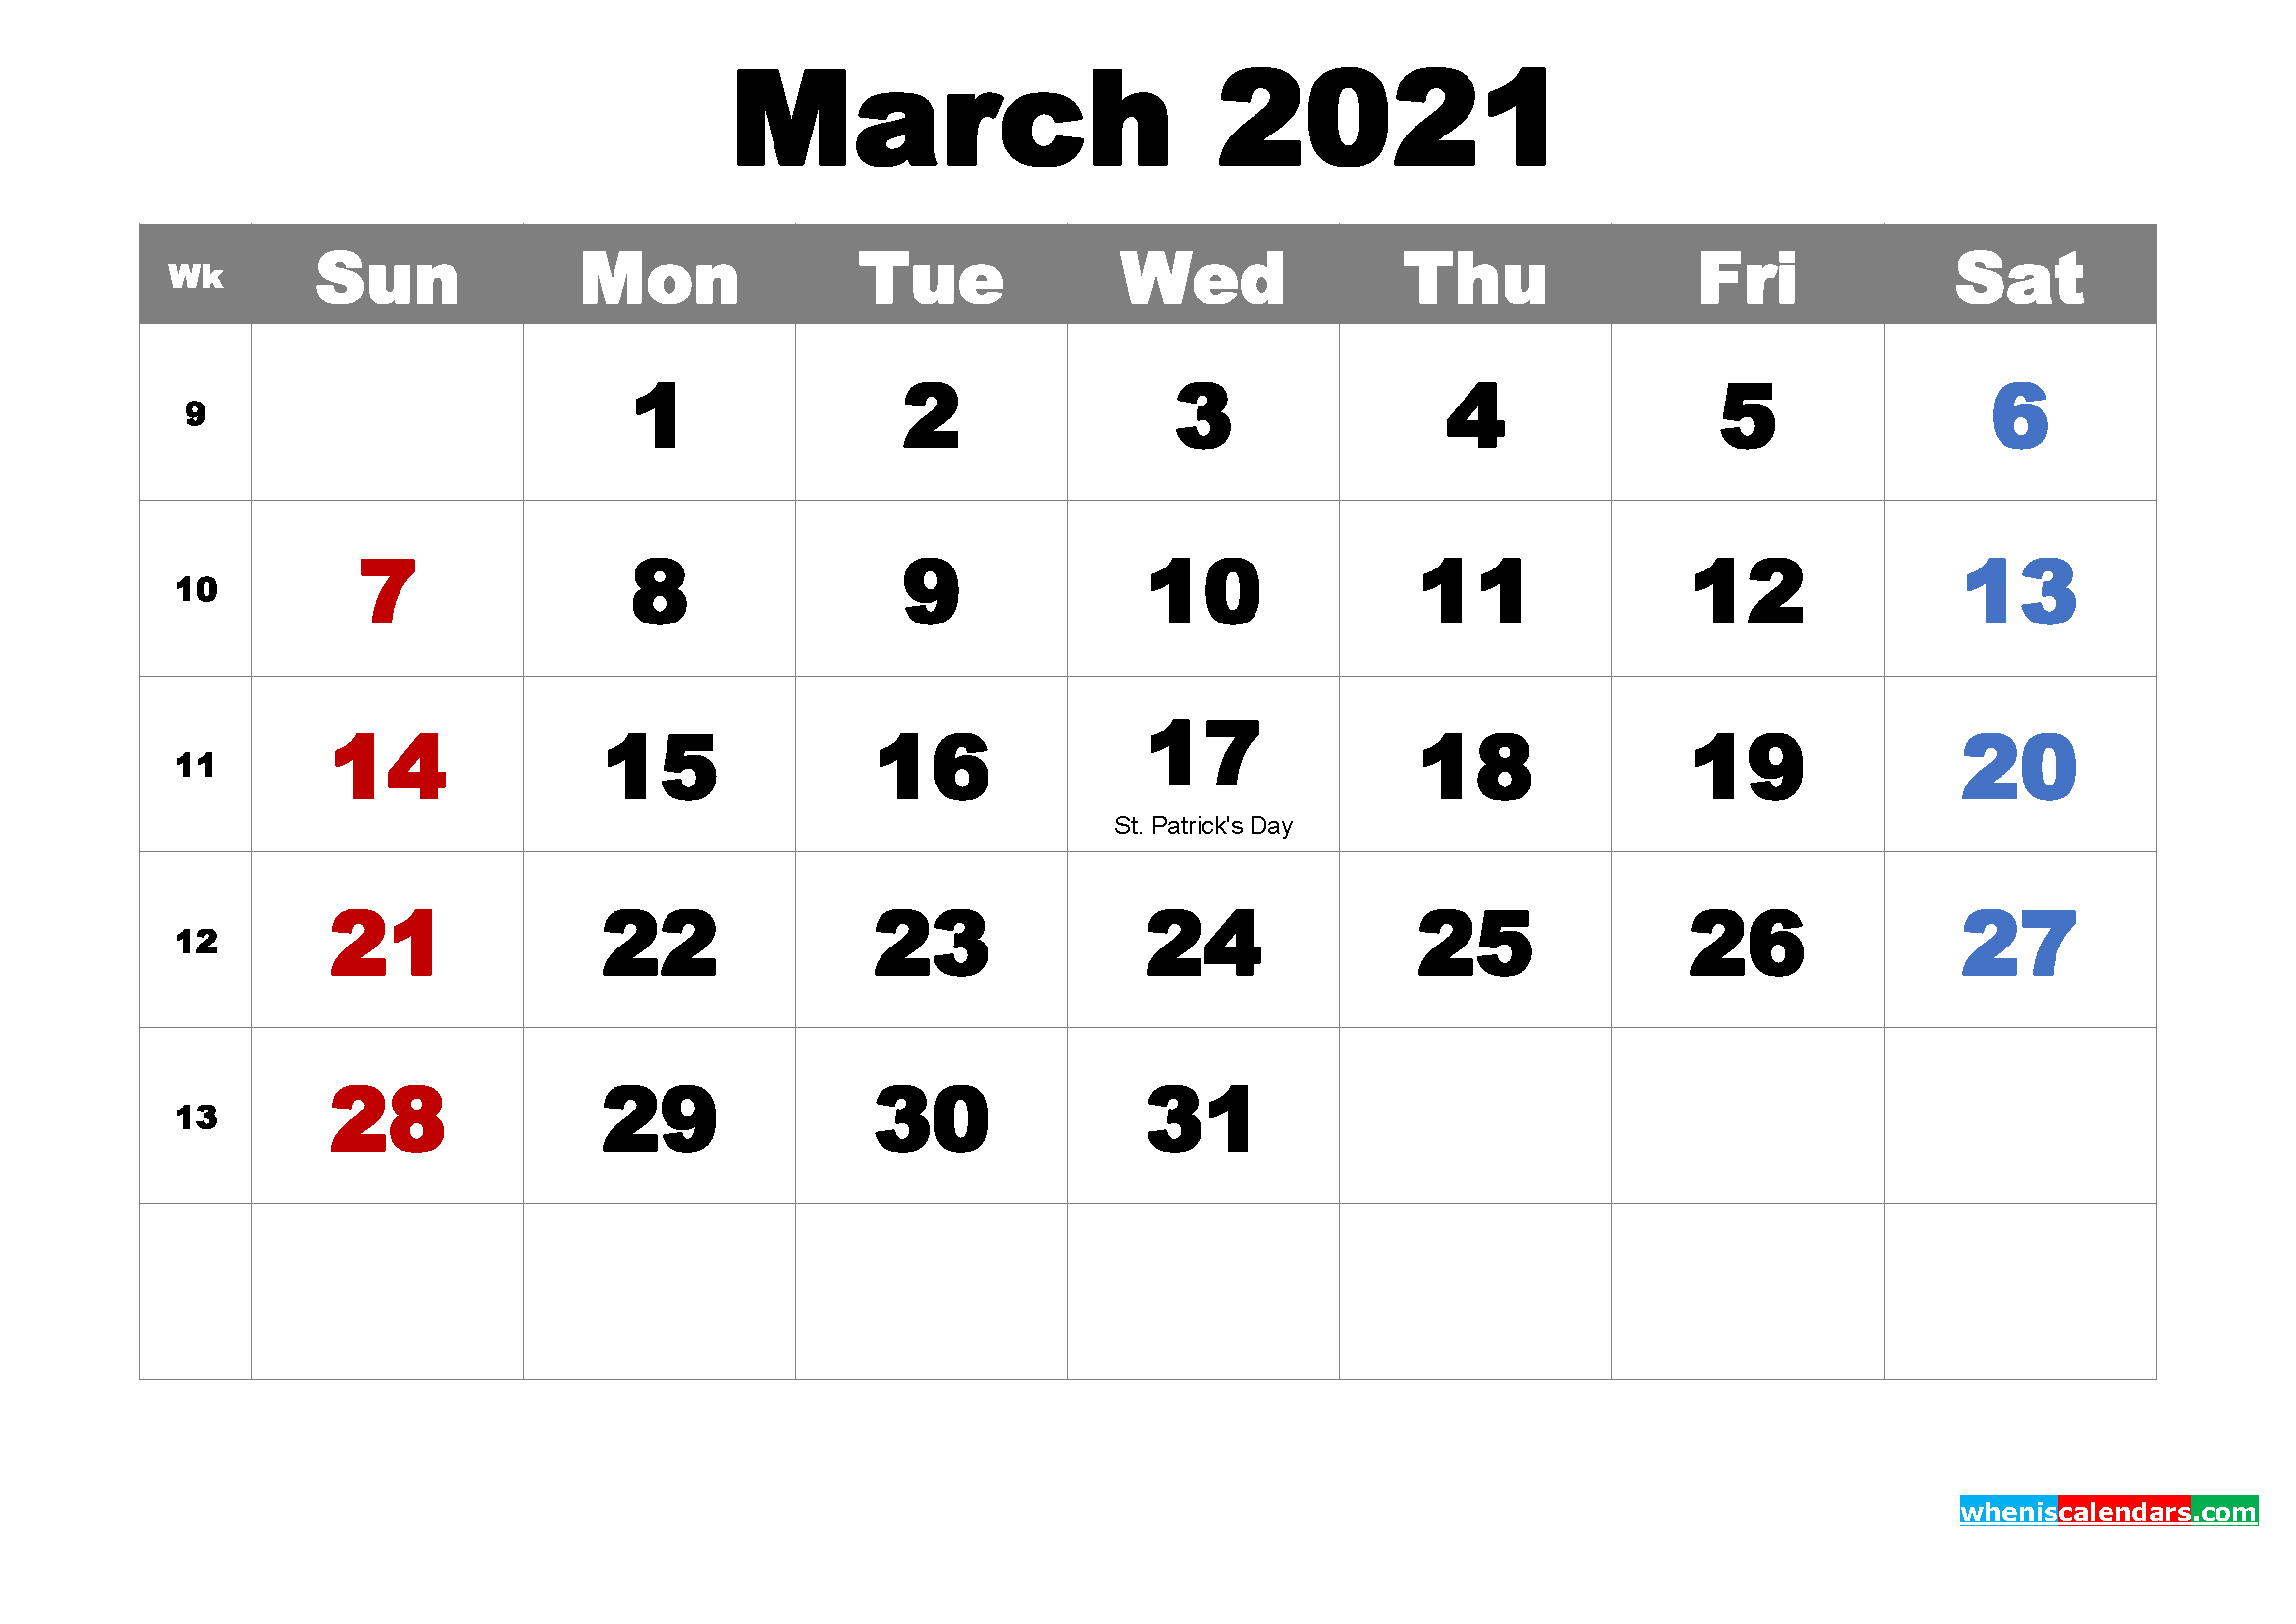 Printable March 2021 Calendar by Month